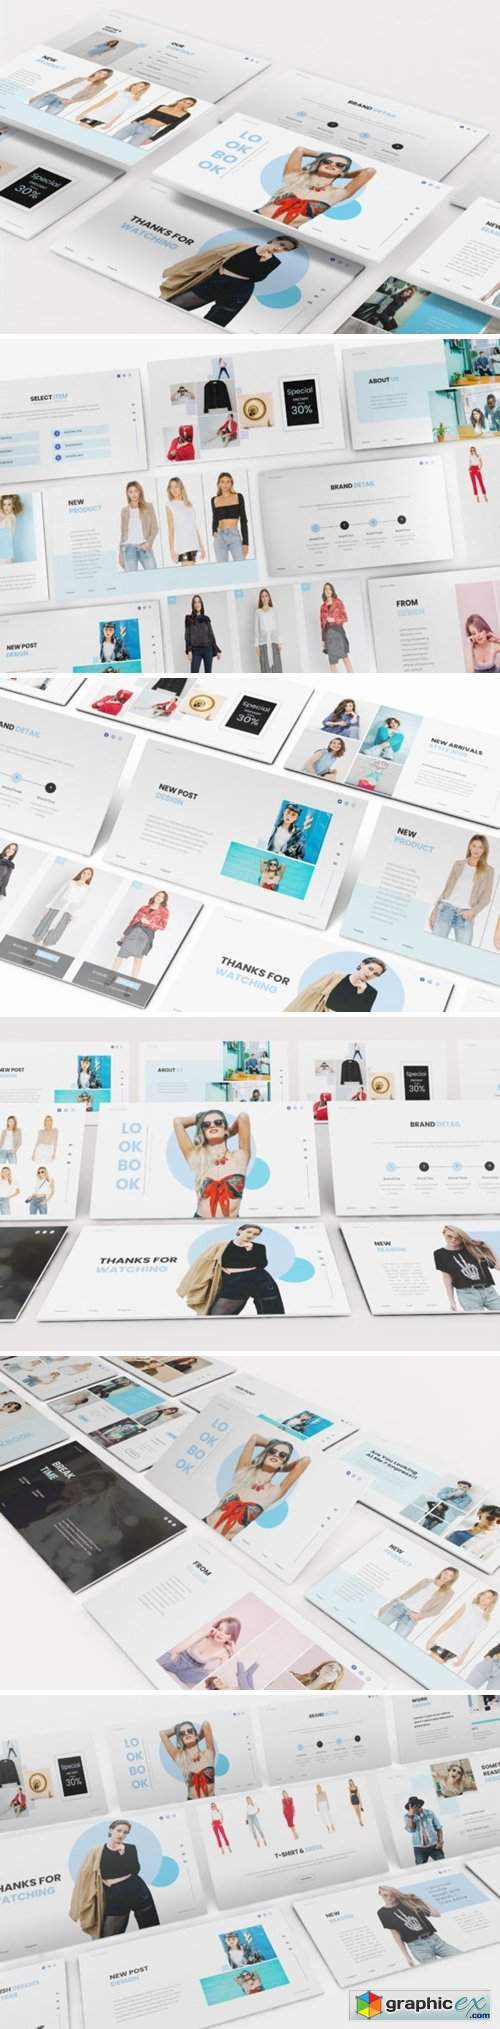 Fashion Lookbook Powerpoint